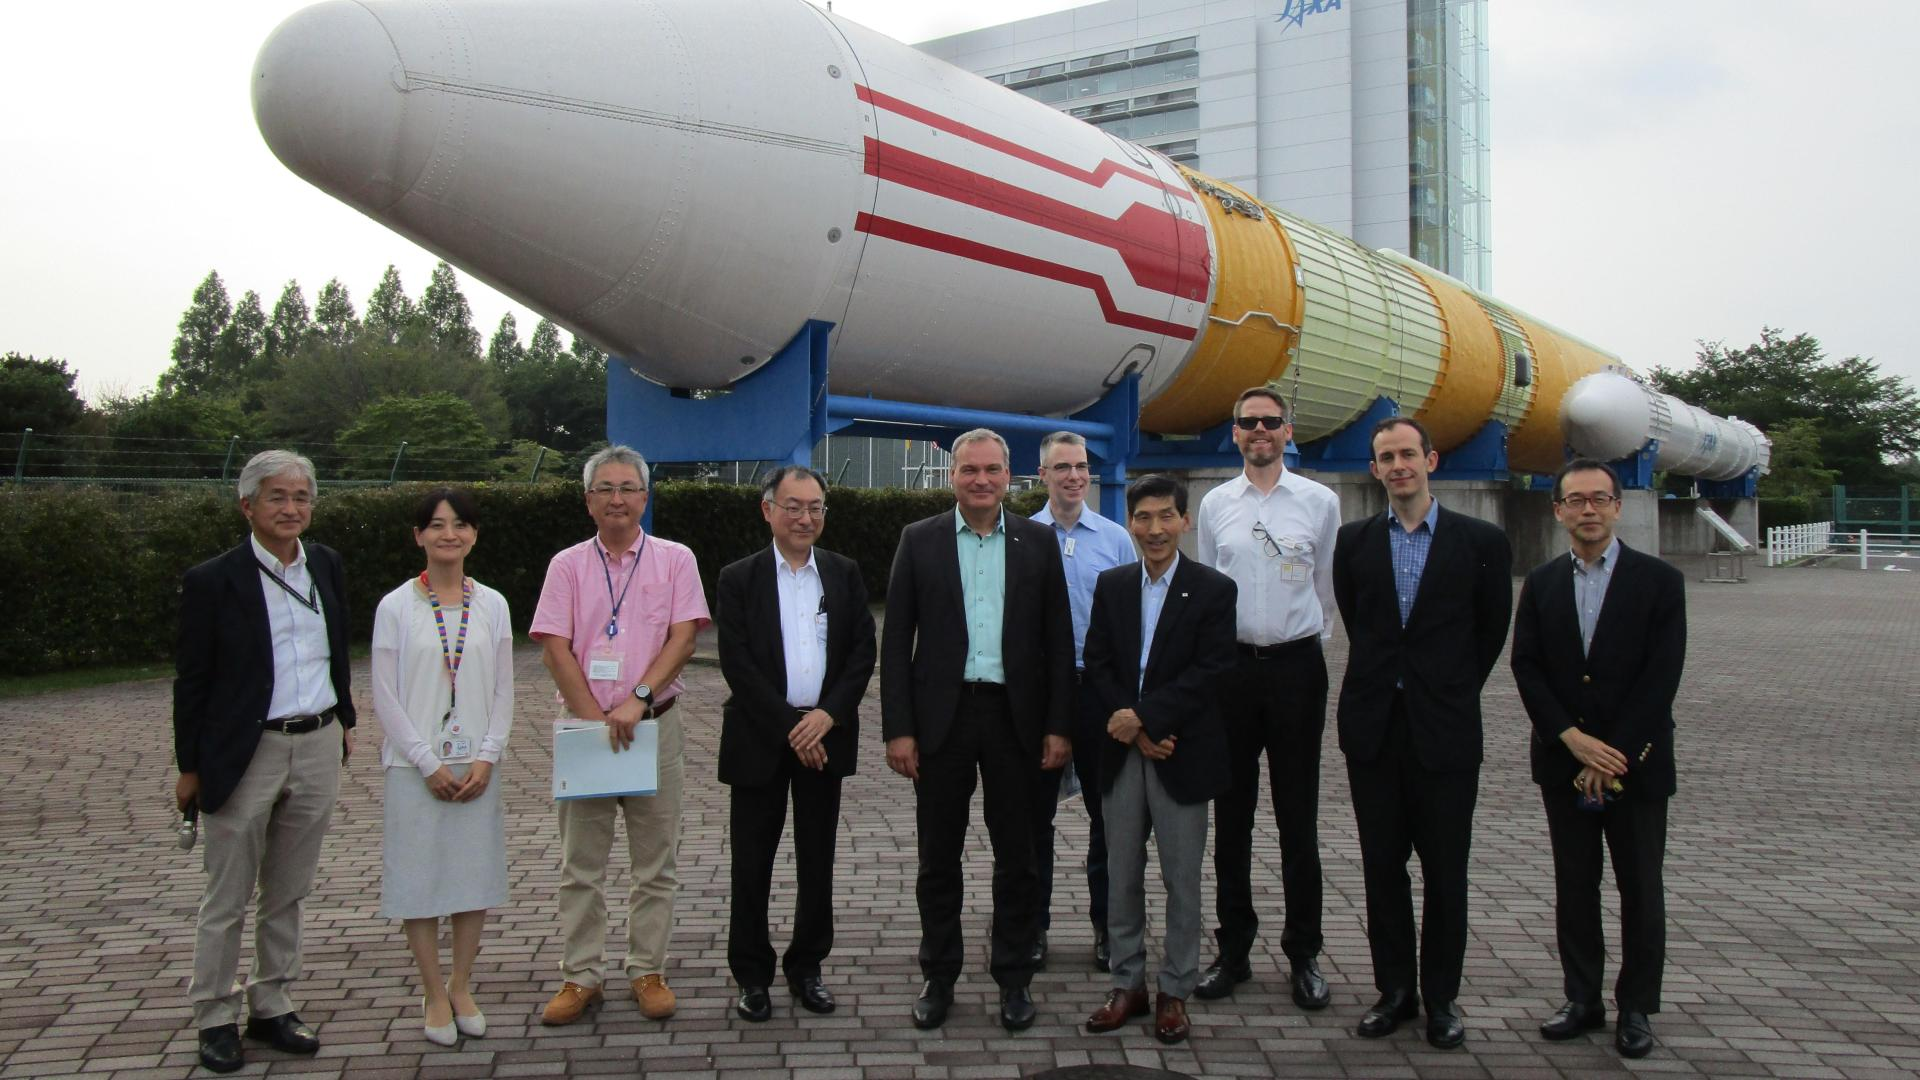 The DLR delegation during a visit to the JAXA Tsukuba Space Centre on 31 July 2019.